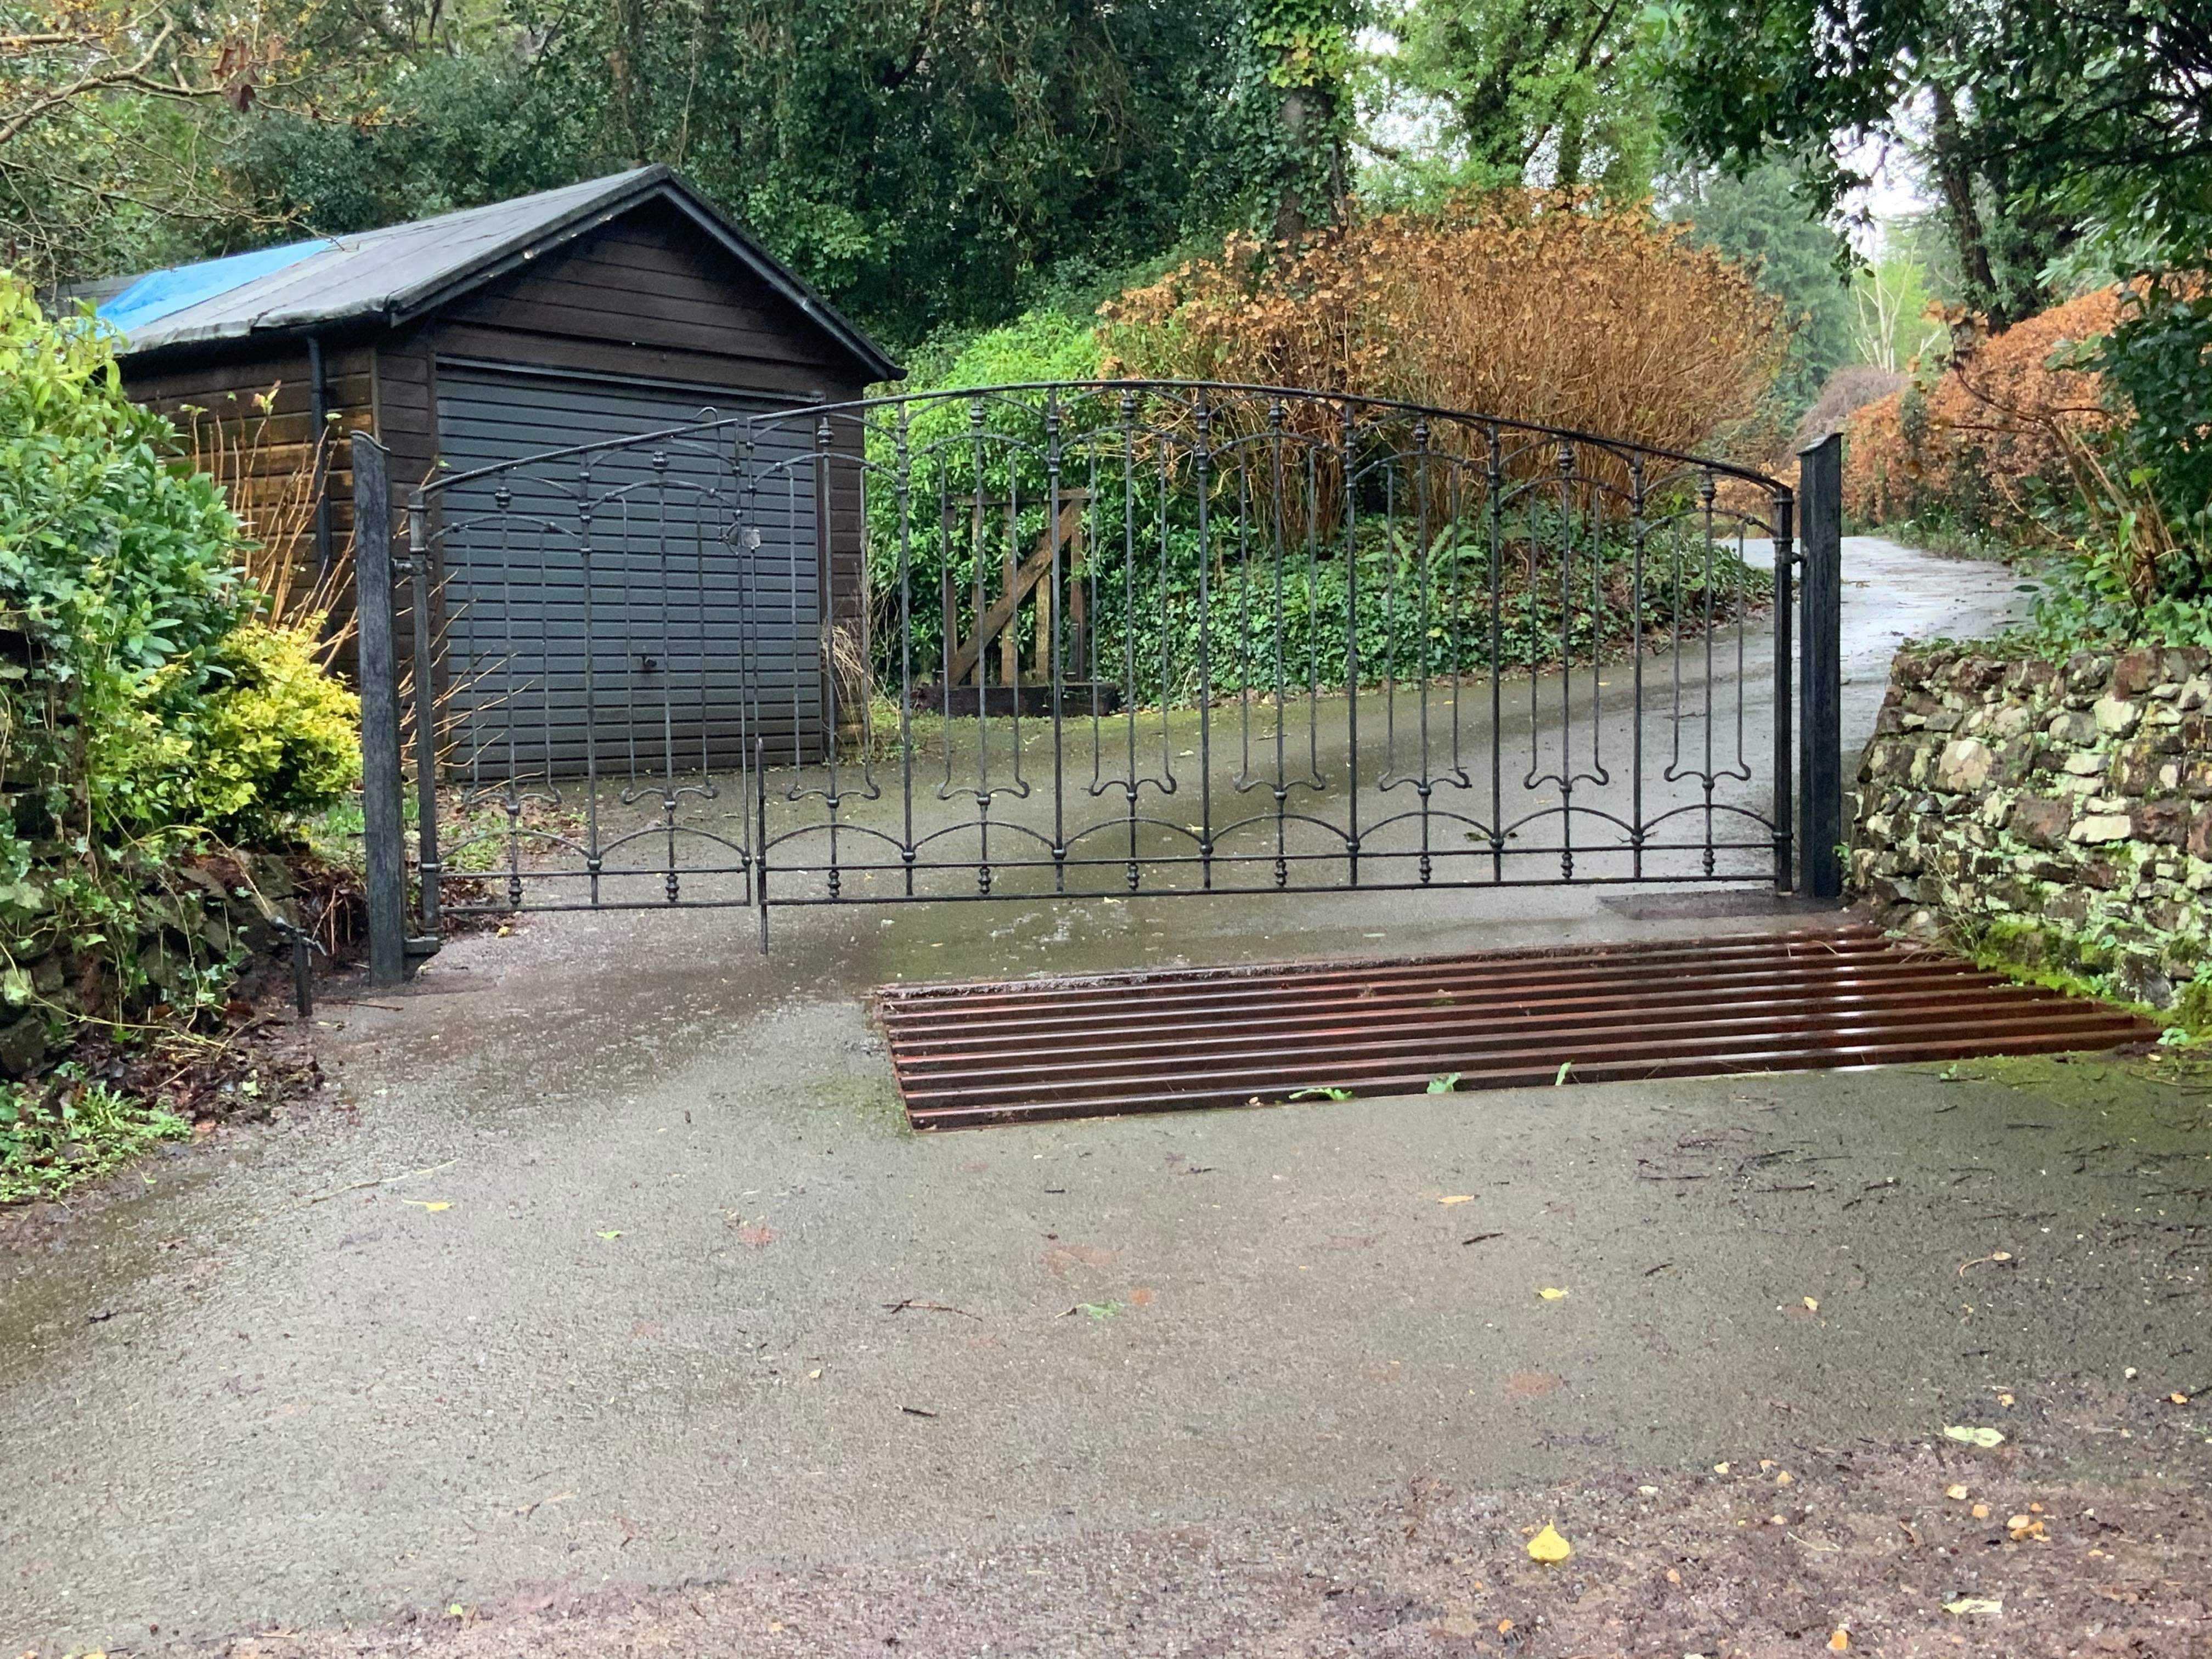 Luccombe gates by West Country Blacksmiths